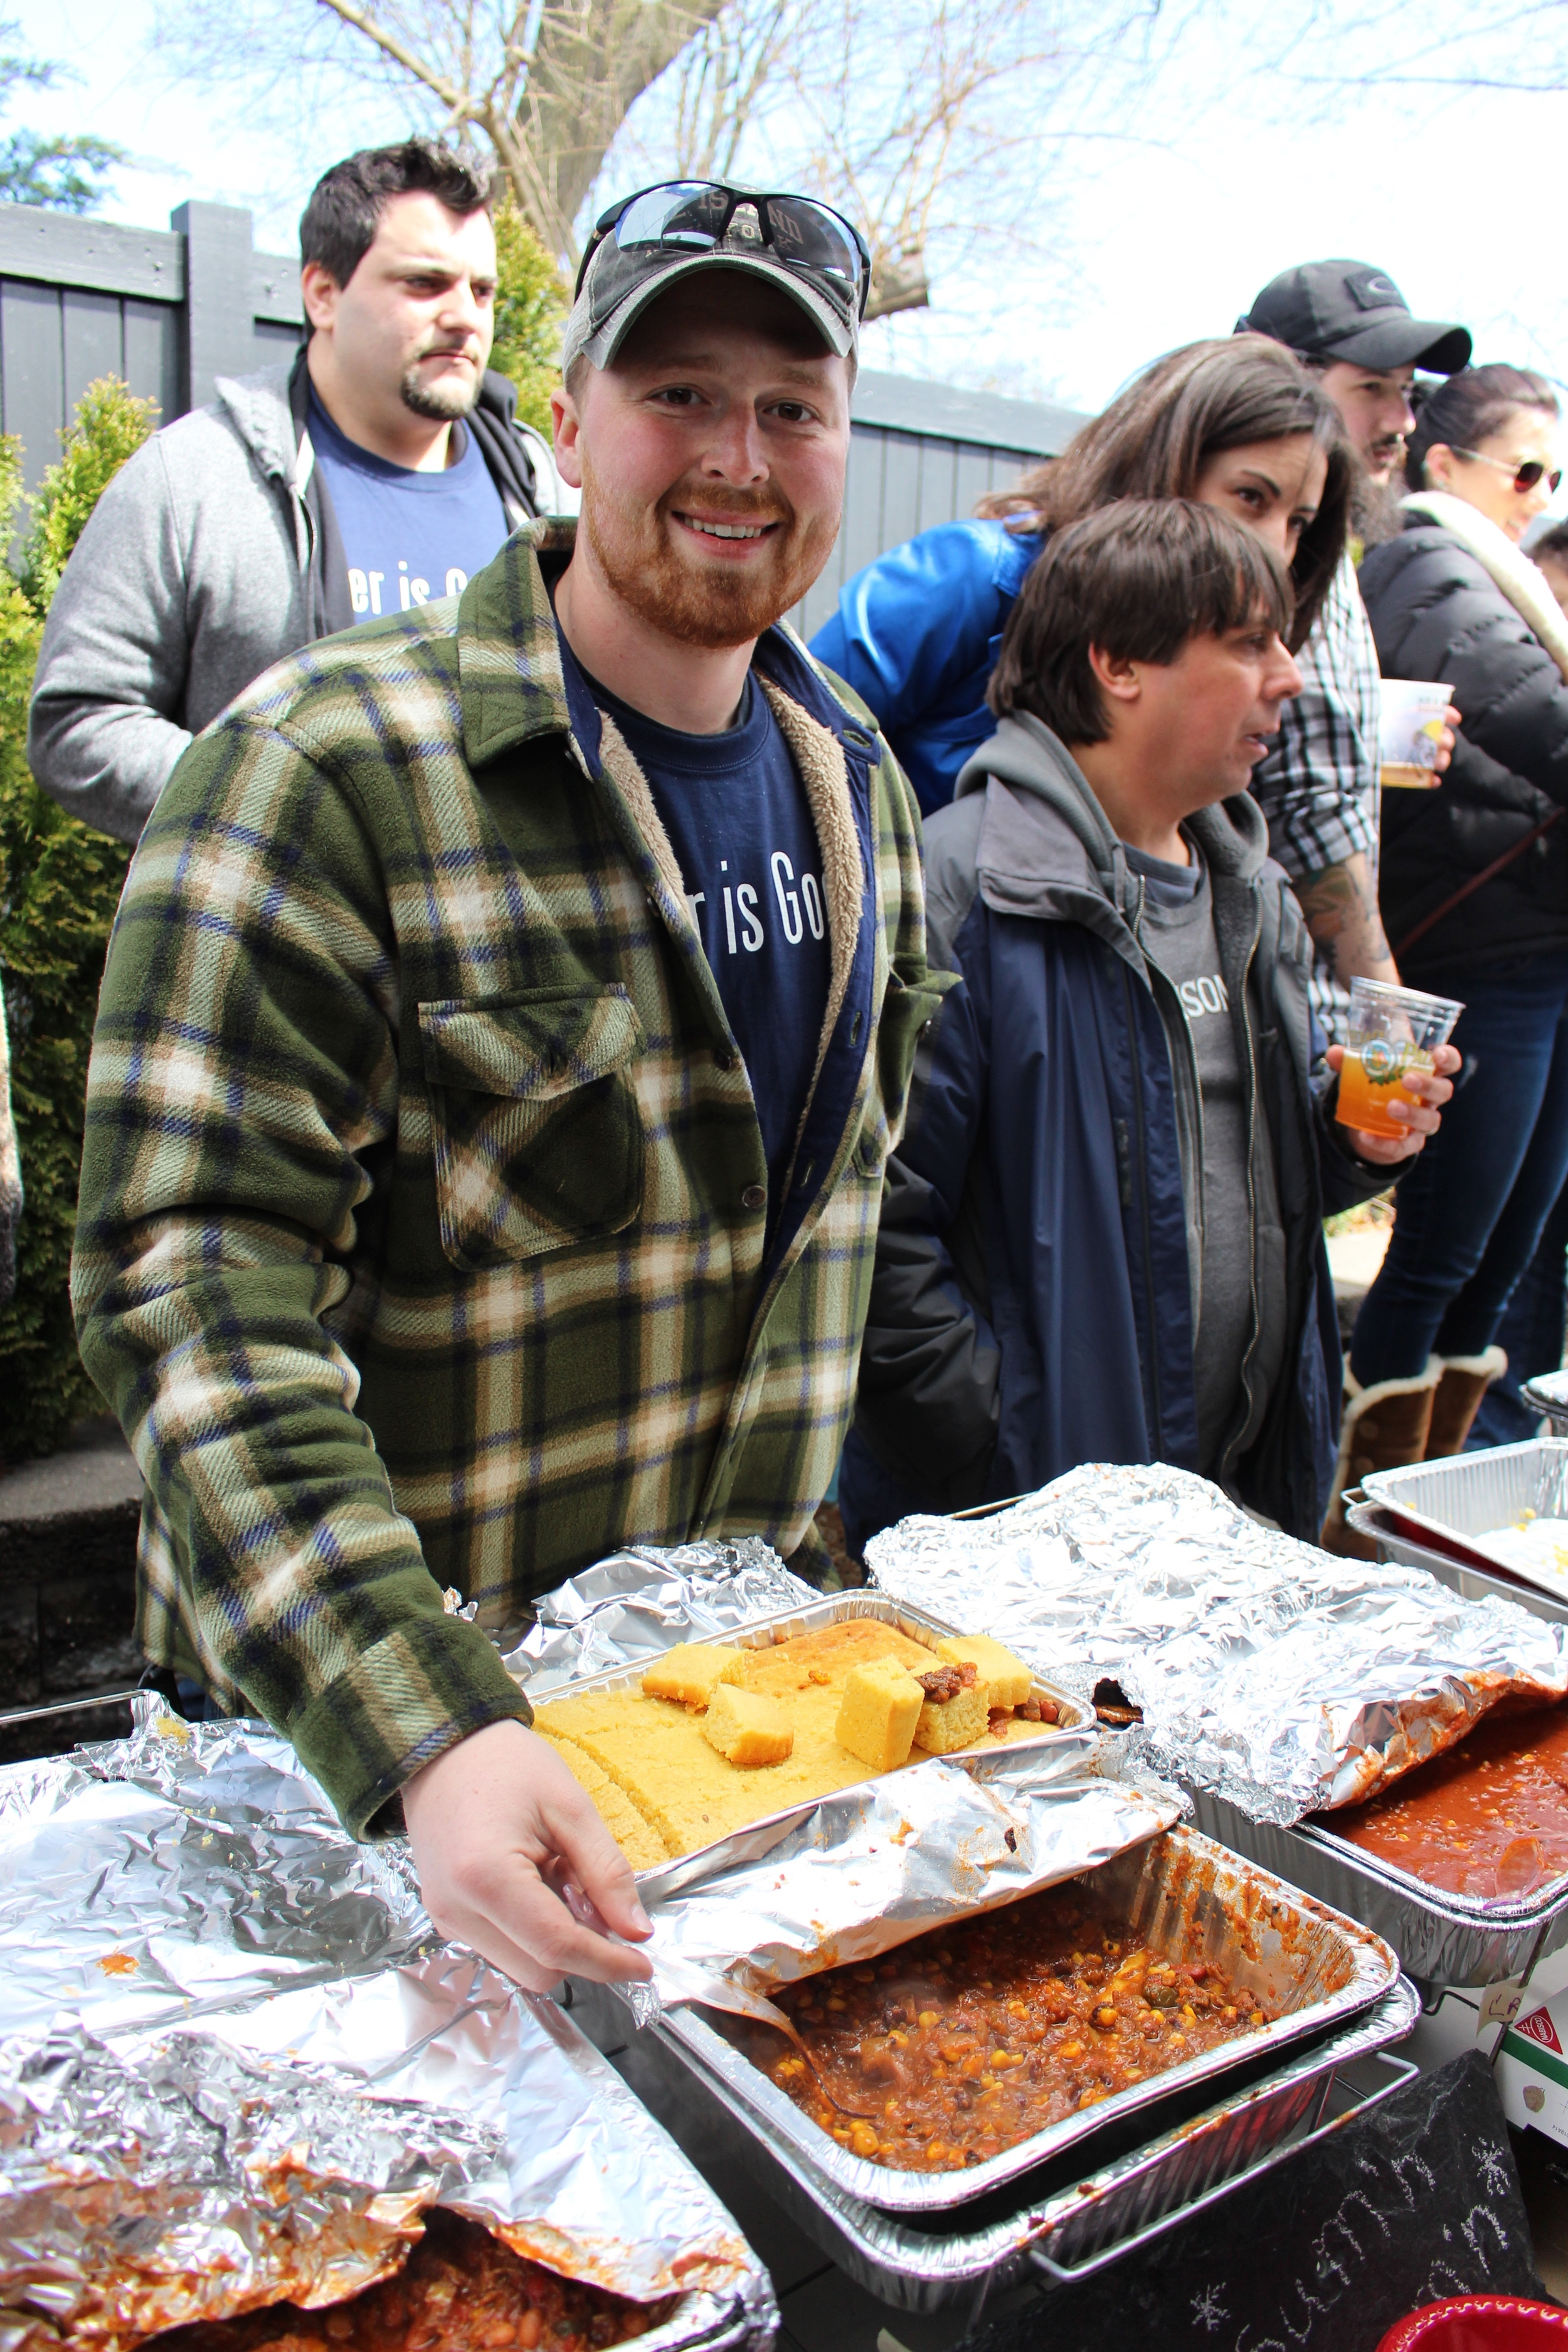 """Returning chili champion Dylan Latchford, of East Northport, said that his """"Lil BBQ: sum'n sum'n"""" includes smoked meat and a bunch of grilled vegetables."""